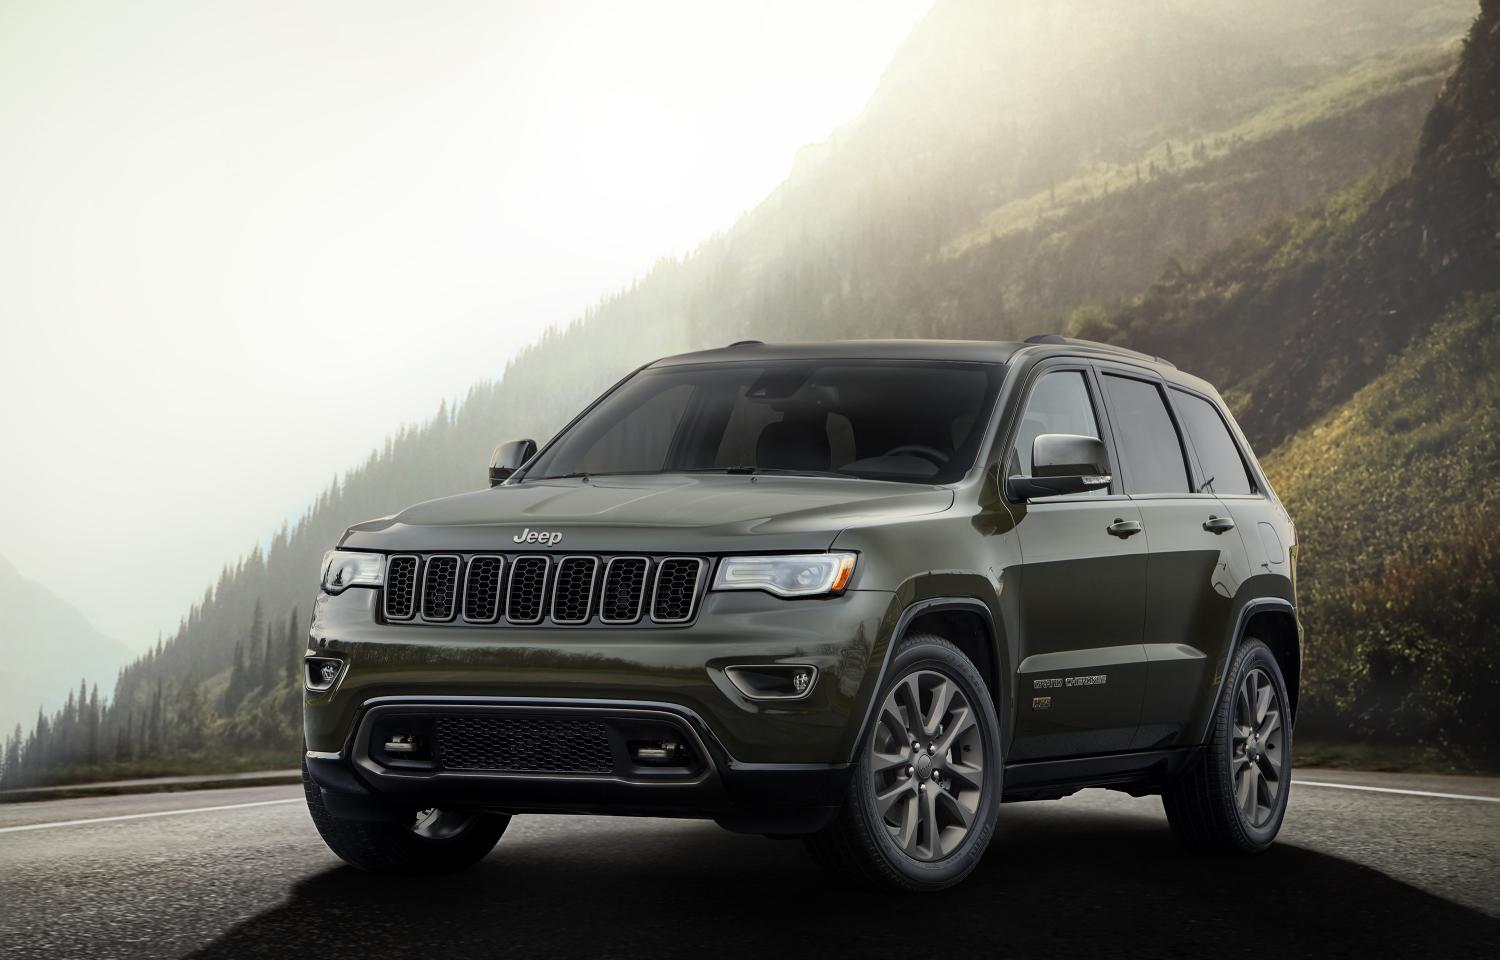 75th anniversary Jeep Grand Cherokee pictured in Recon Green